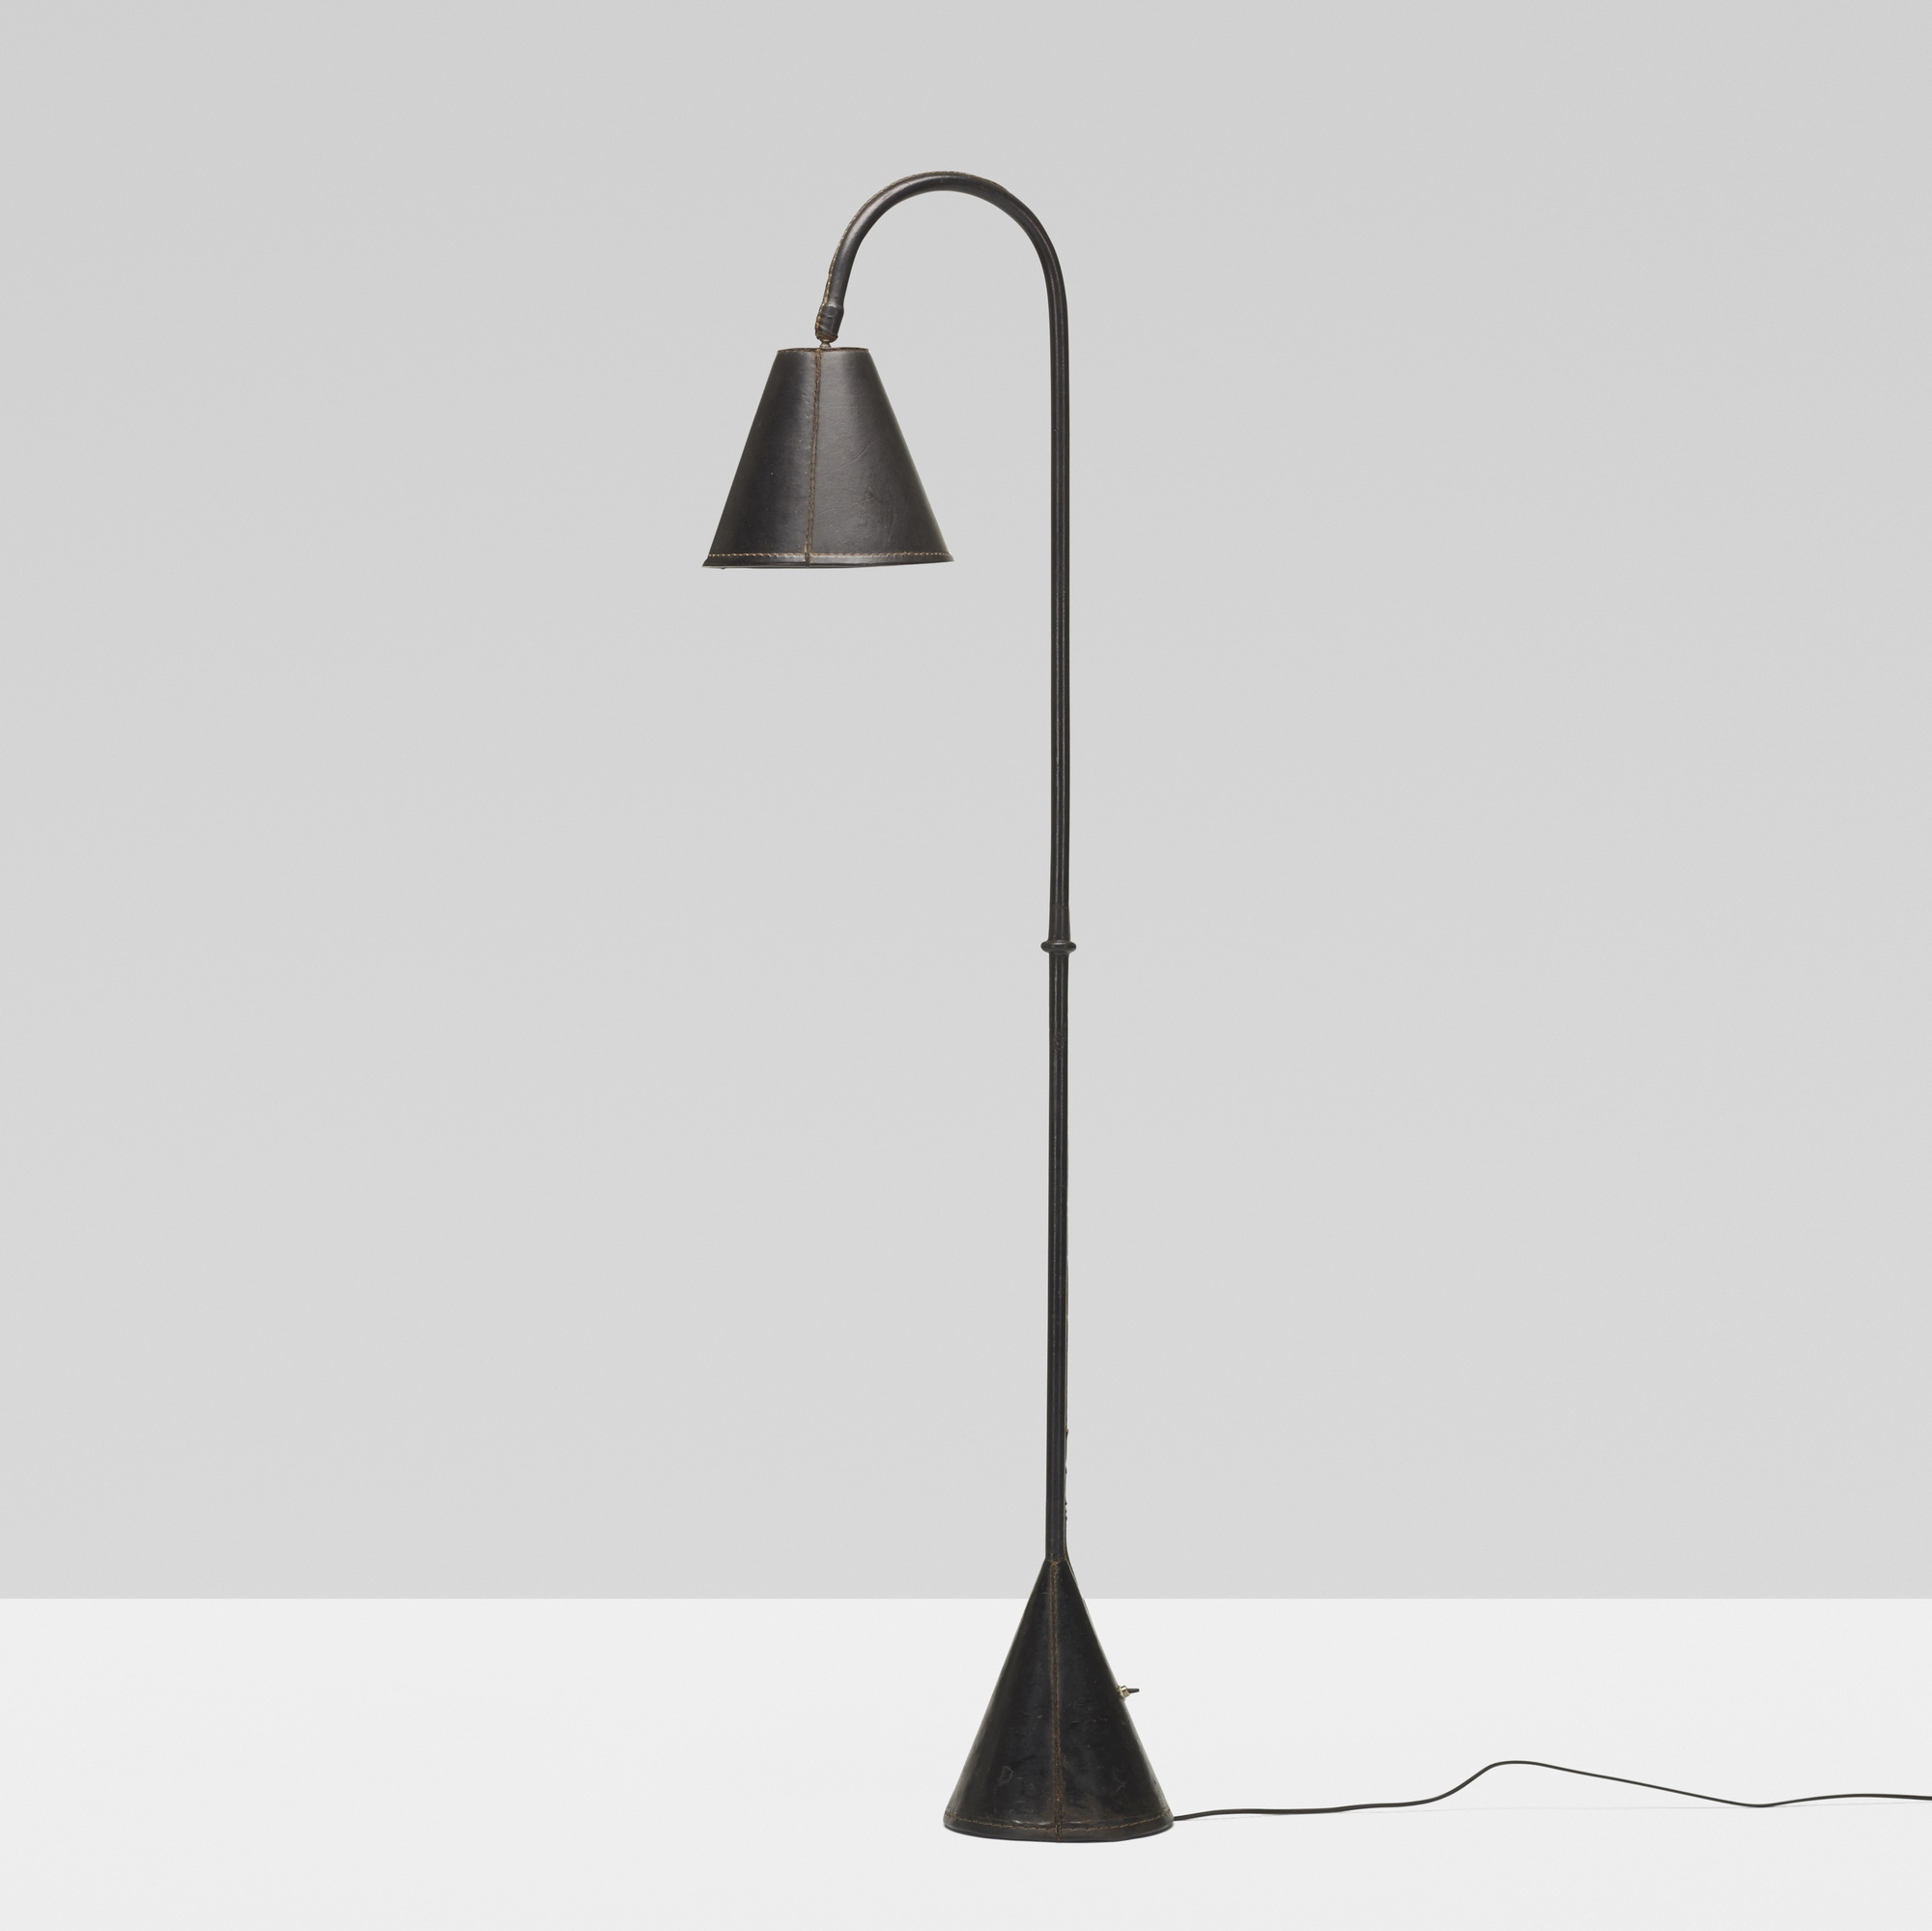 296: Jacques Adnet / floor lamp (1 of 2)